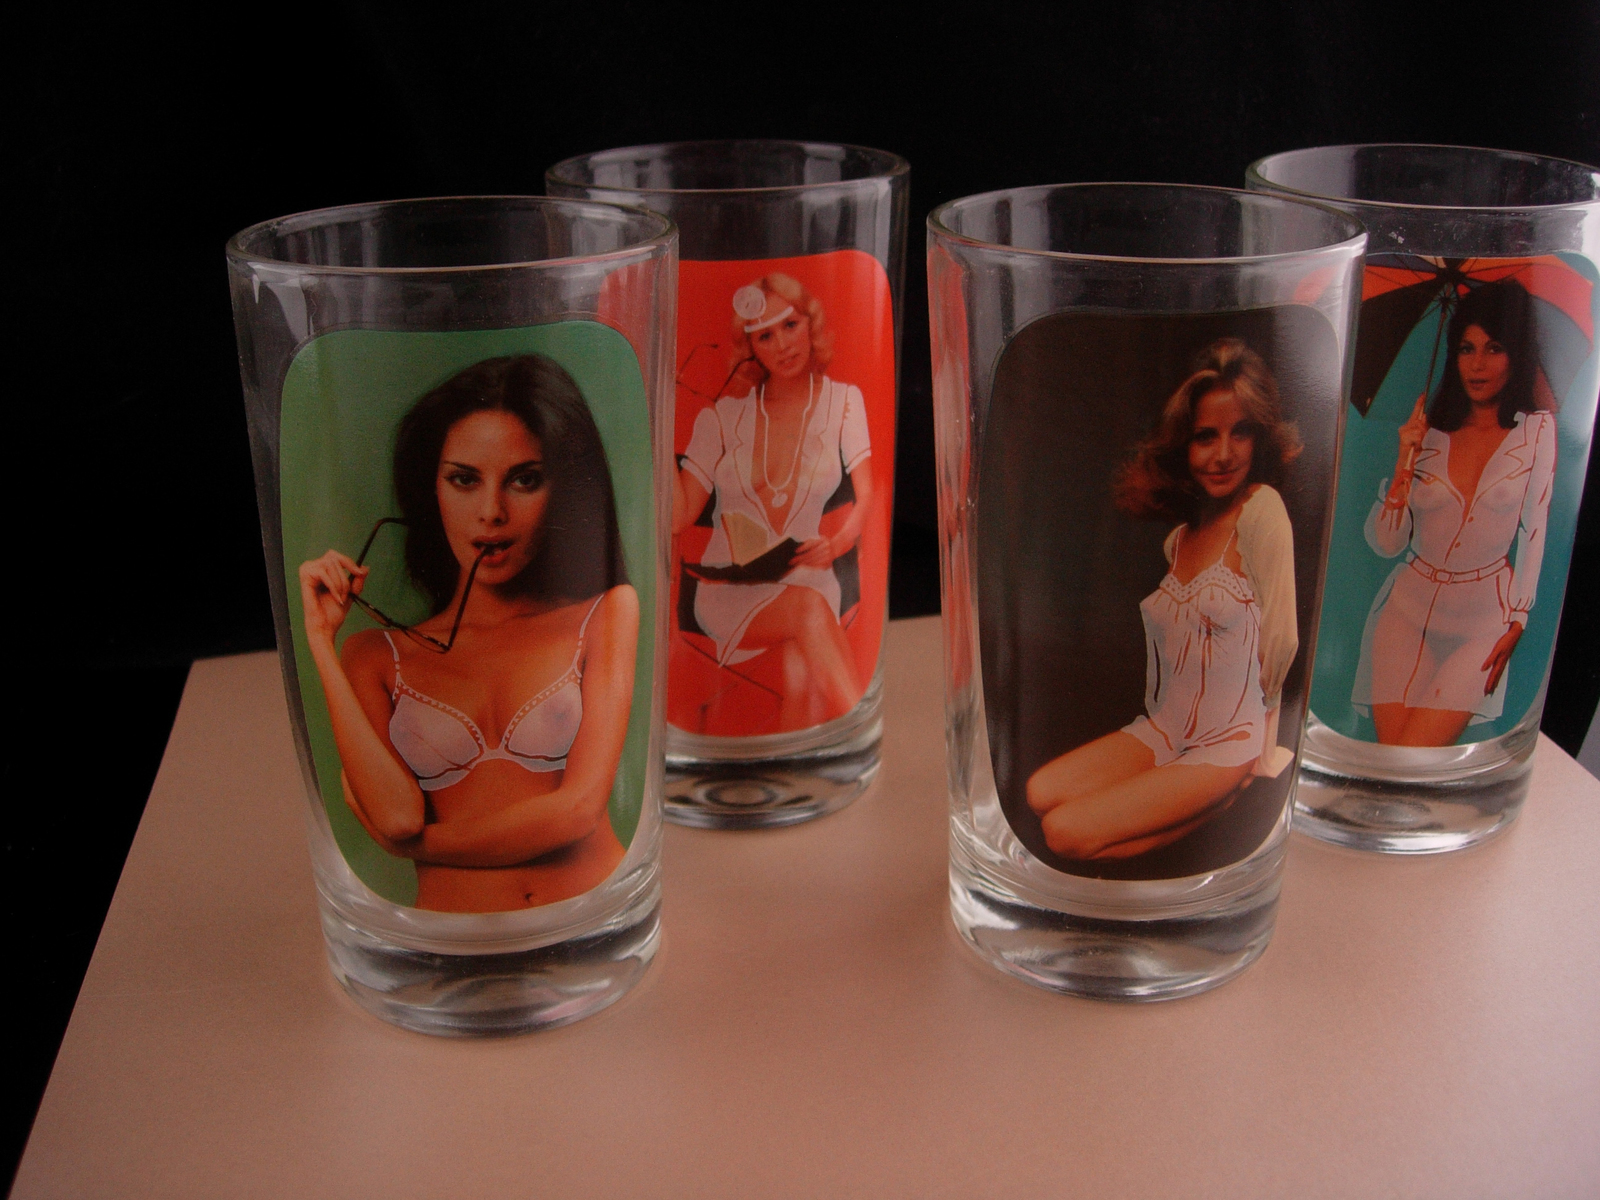 Nude Pinup girl glasses - erotic nude novelty gift - Vintage bartender naughty s